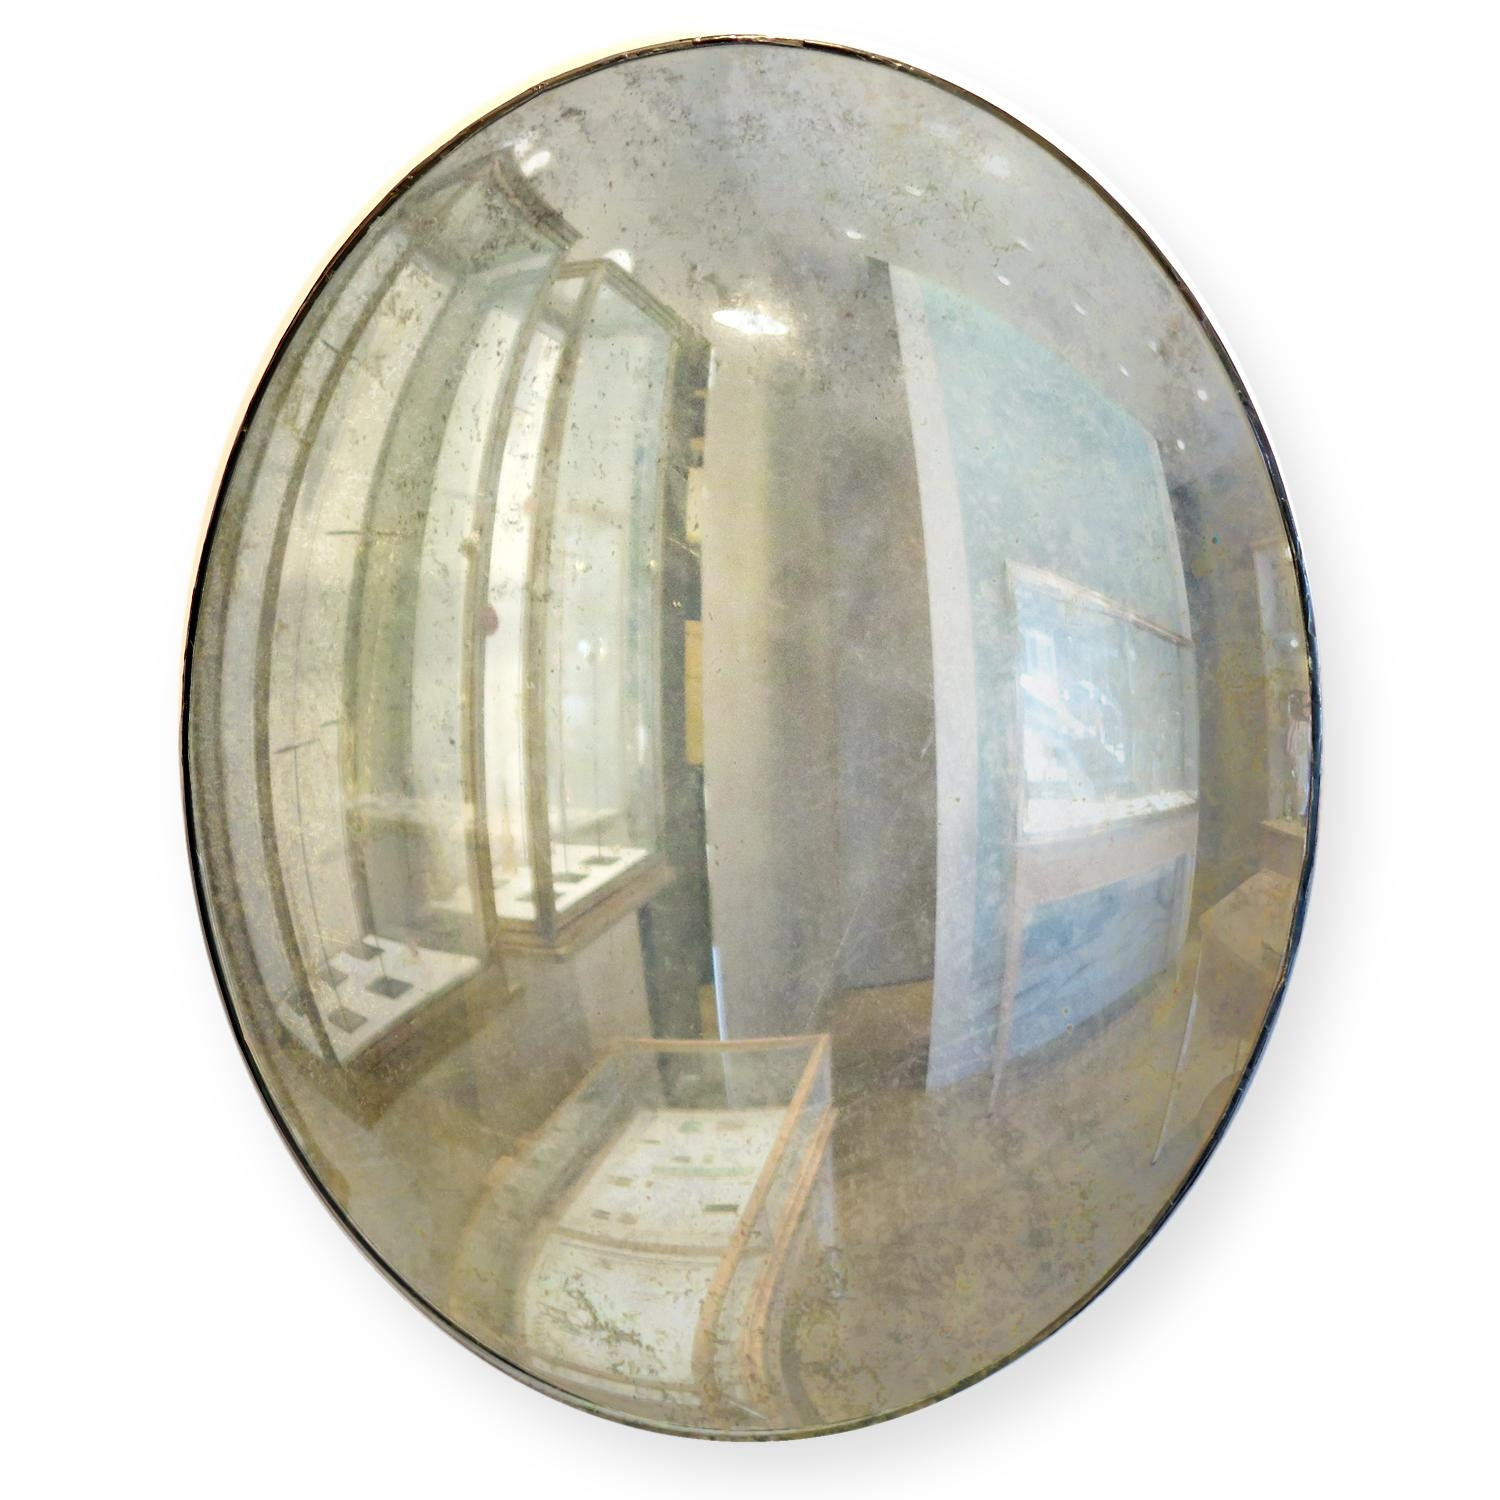 Maureen Fullam 12 Inch Round Silver Leafed Mirror – August Regarding Large Round Convex Mirror (Image 14 of 20)